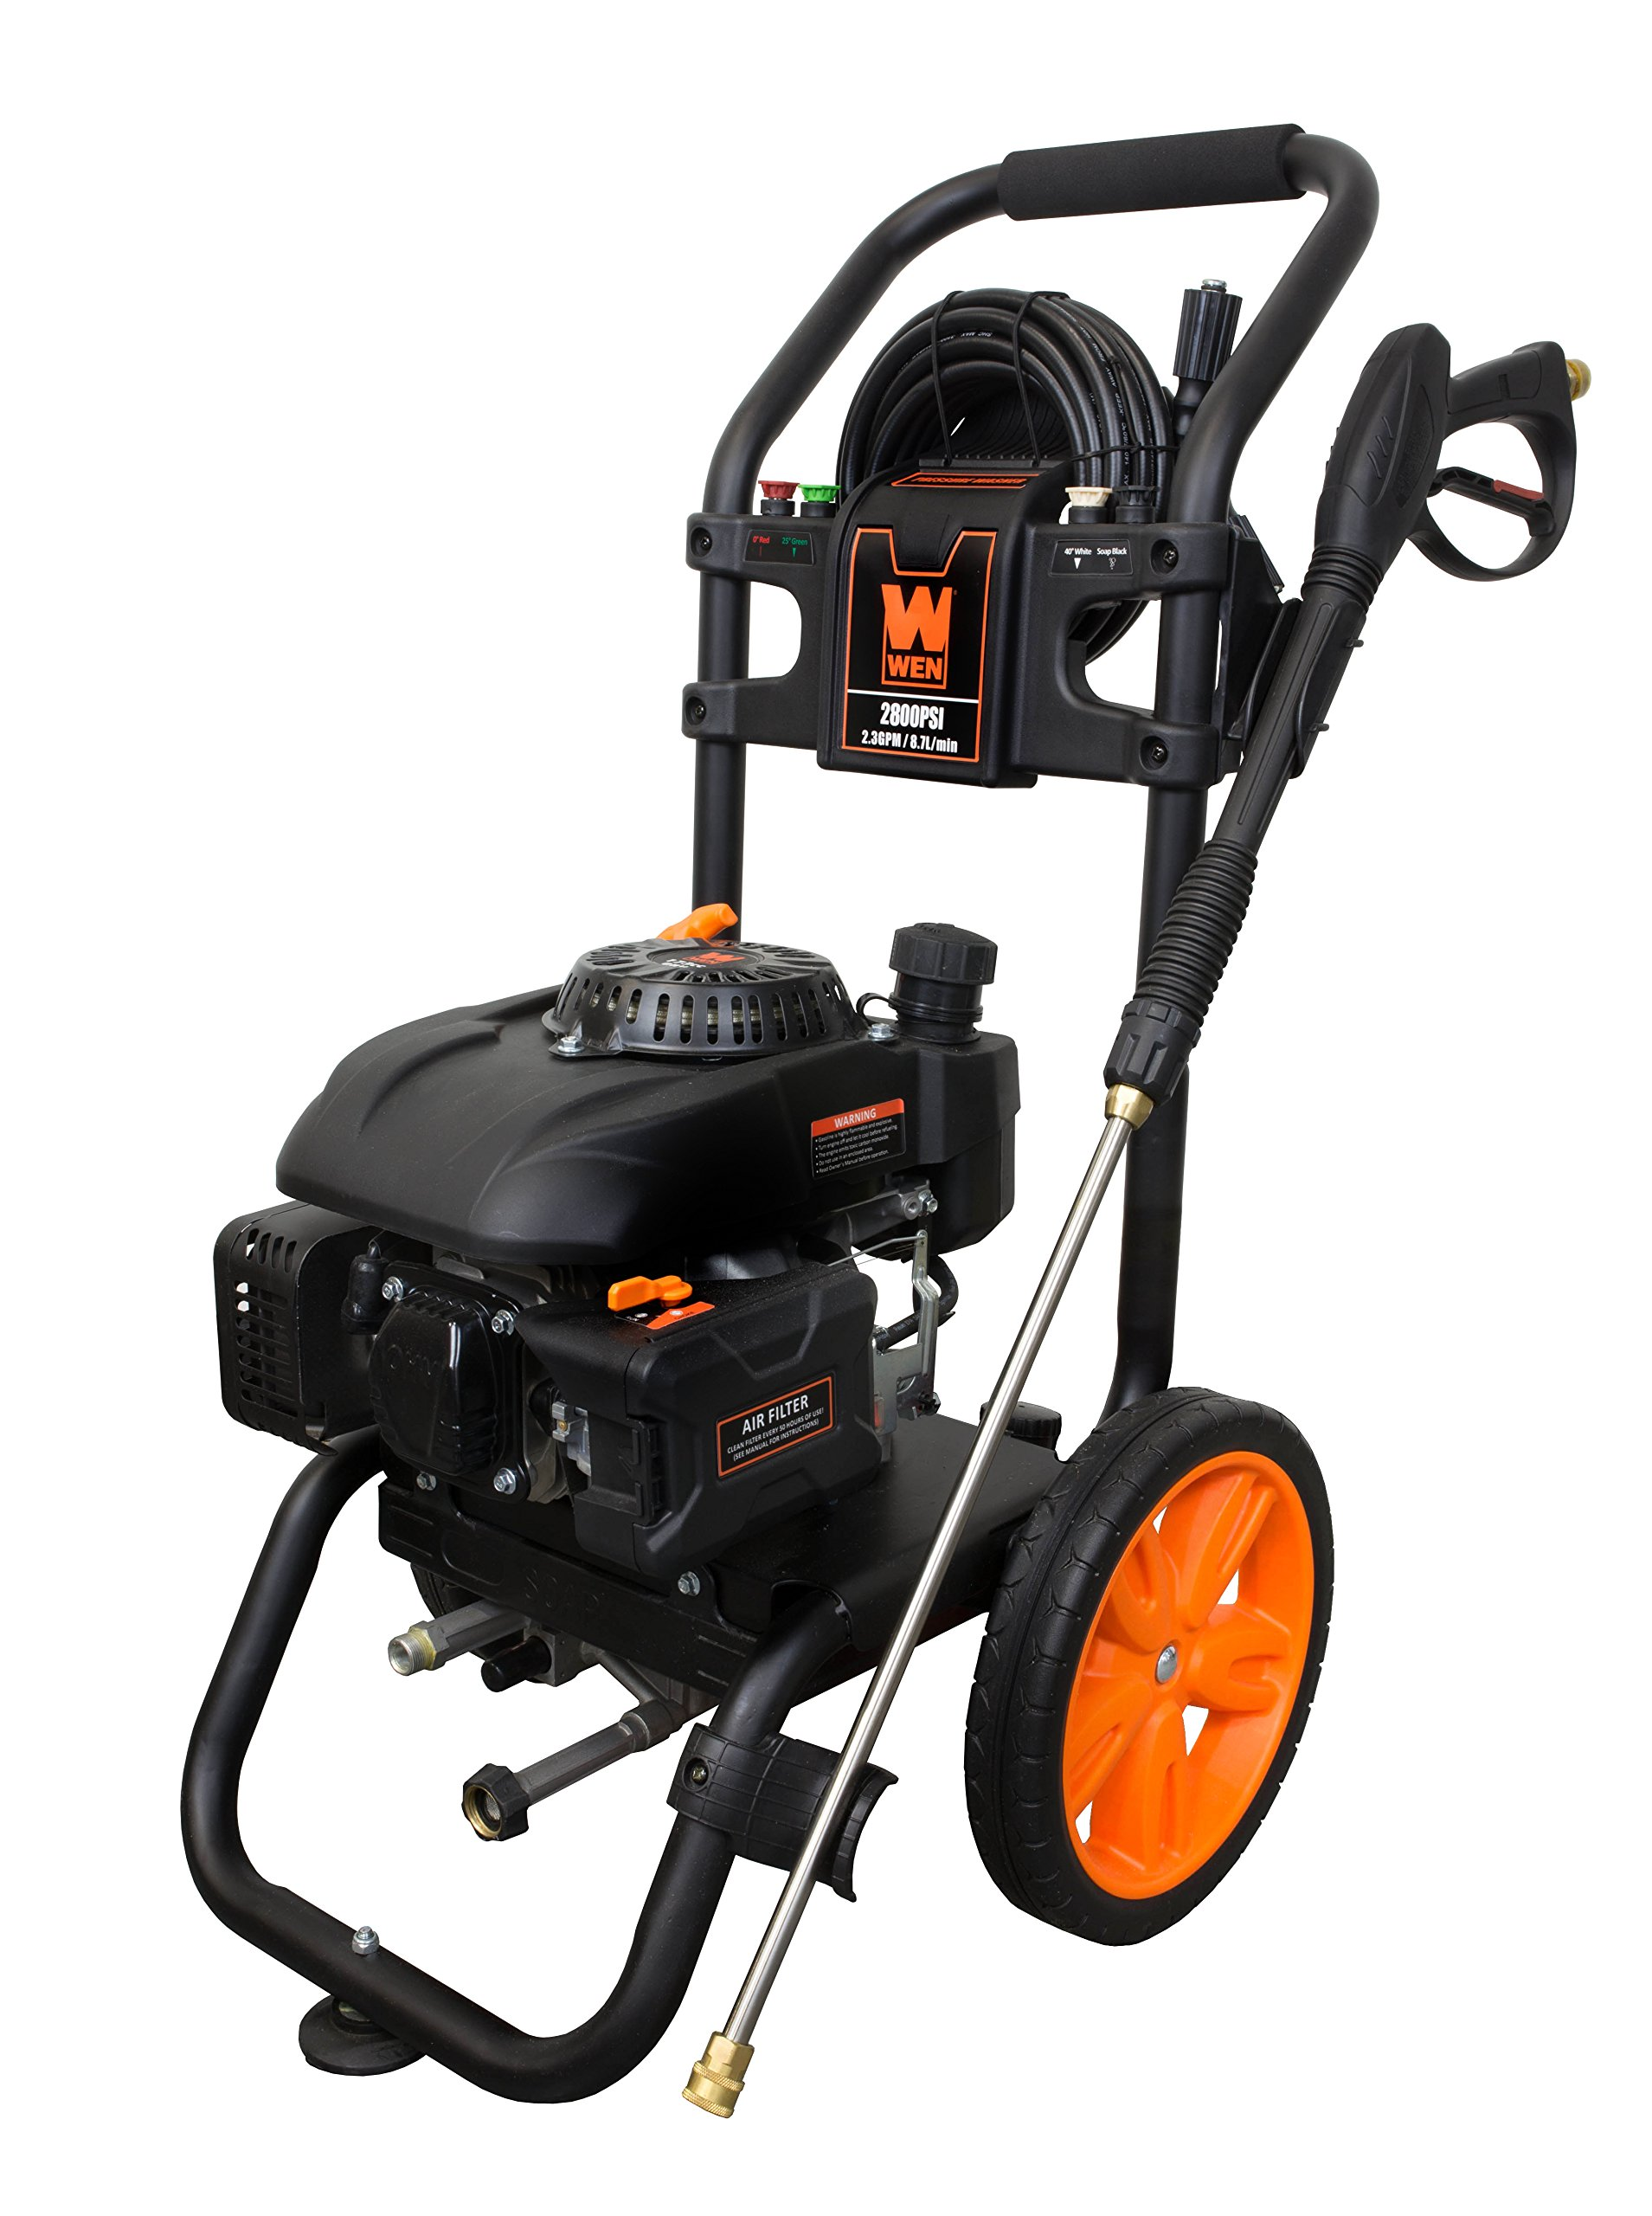 WEN PW28 2800 PSI Gas Pressure Washer Product Image